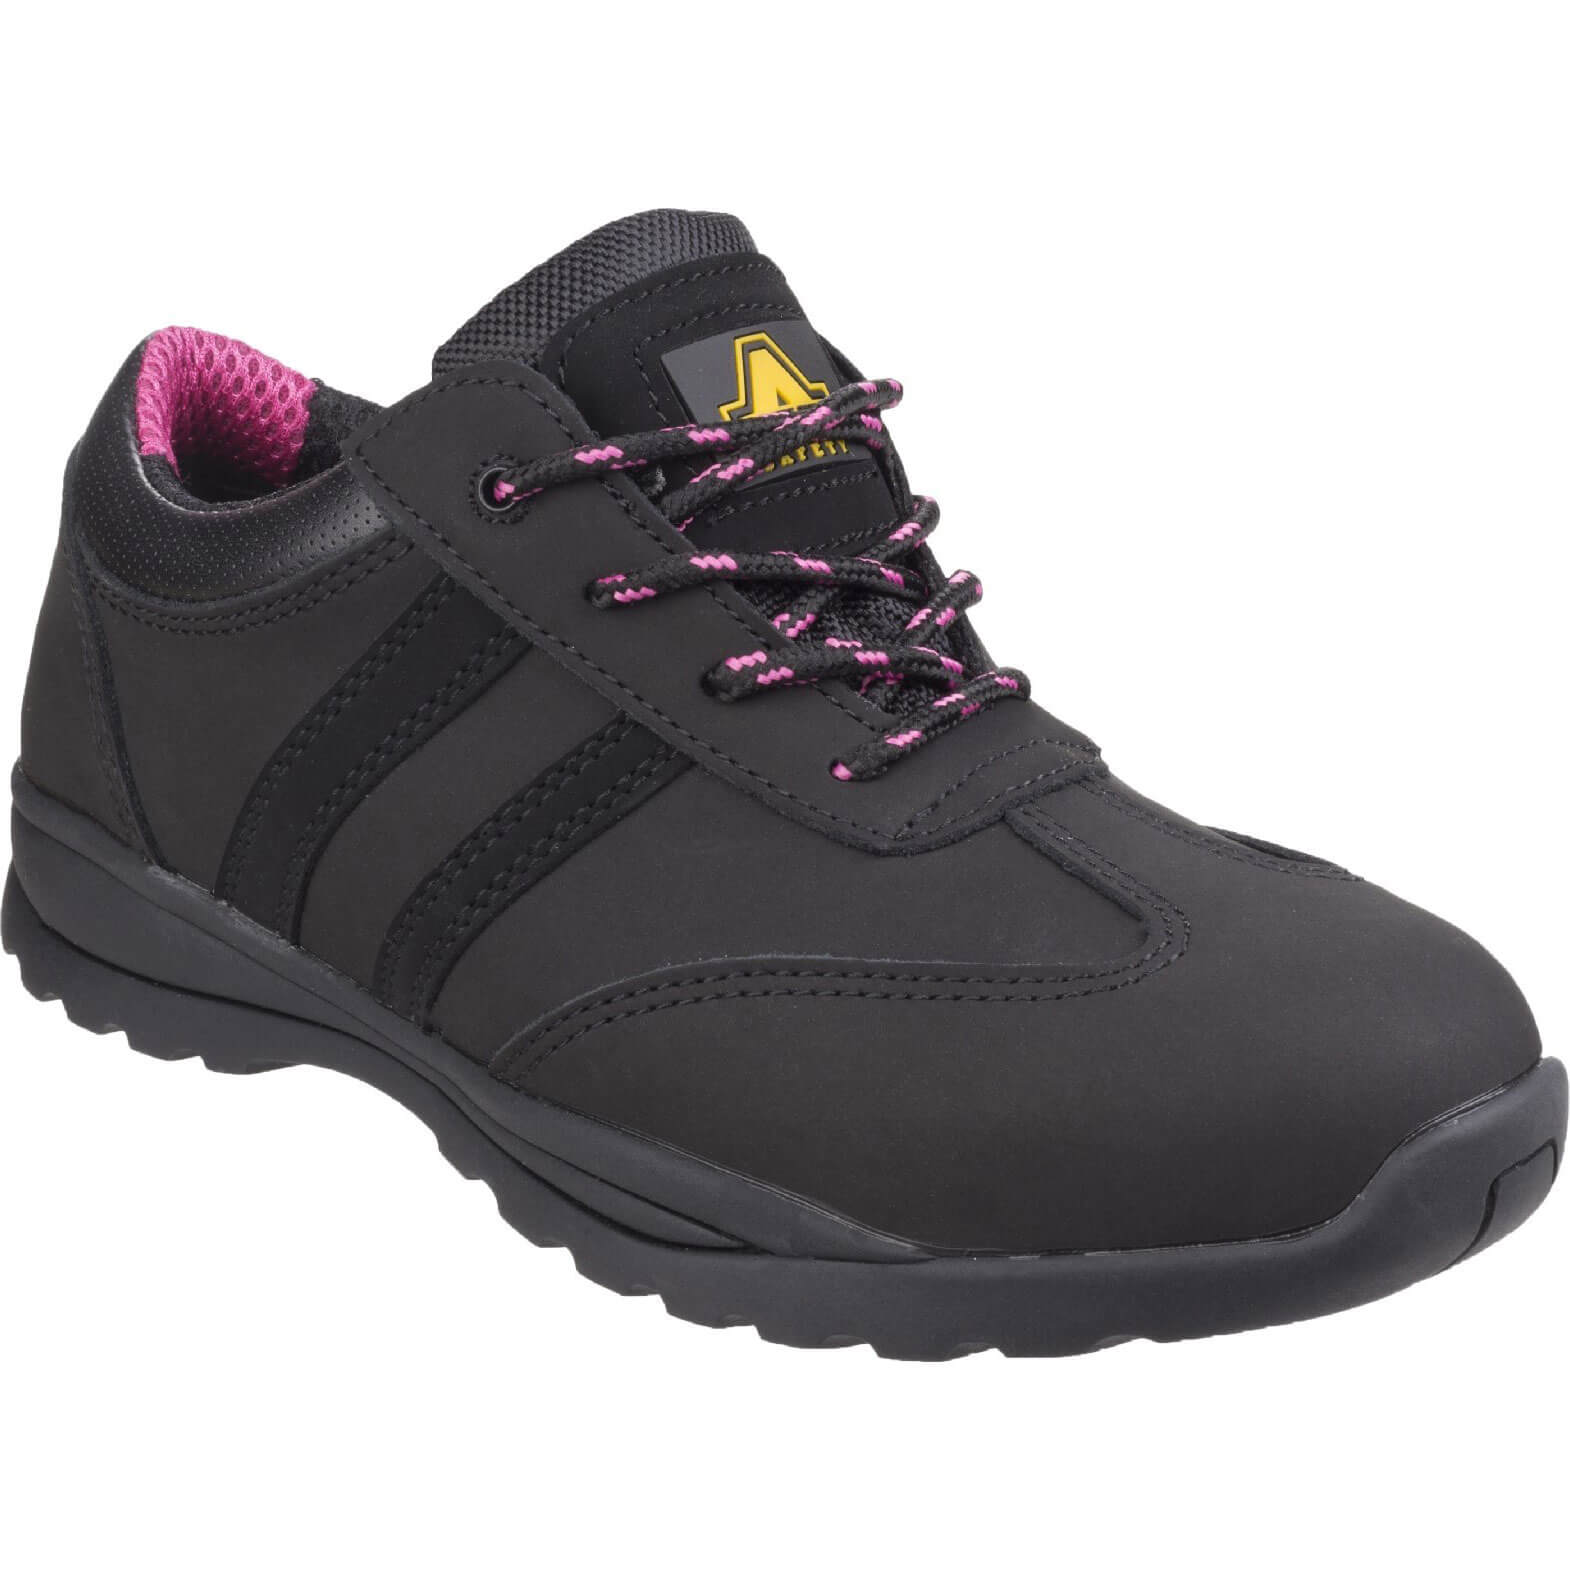 CHEAP Amblers Safety FS706 Sophie Lace Up Safety Trainer Black Size 6.5 – Men's Footwear